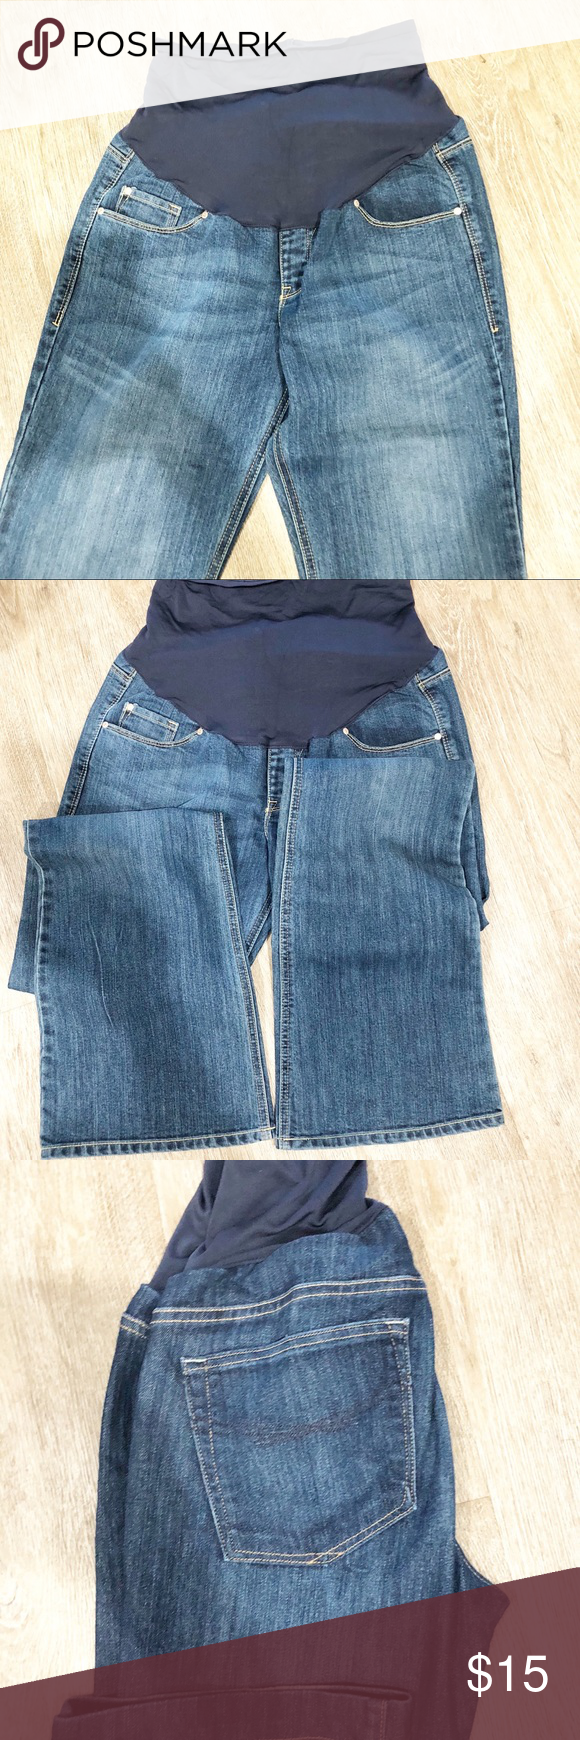 1a041b36e54 Maternity Jeans Size 10 Women s maternity jeans in good condition size 10  Length 37 inches Inseam 31 inches Rise 6 Jeans Boot Cut